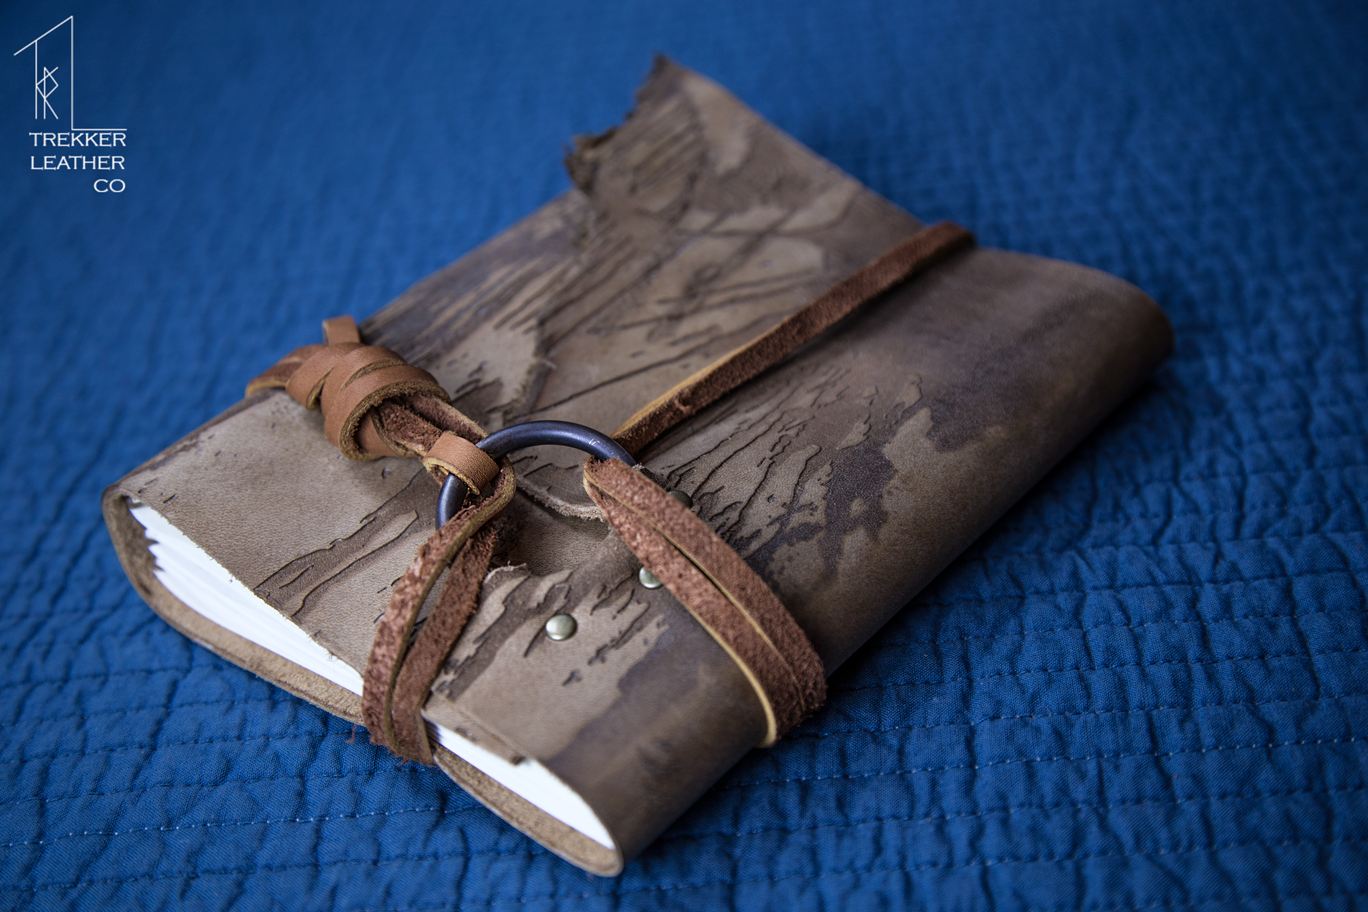 The Trekker Leather Company has a great collaboration with local laser engraving companies to make journals stunning